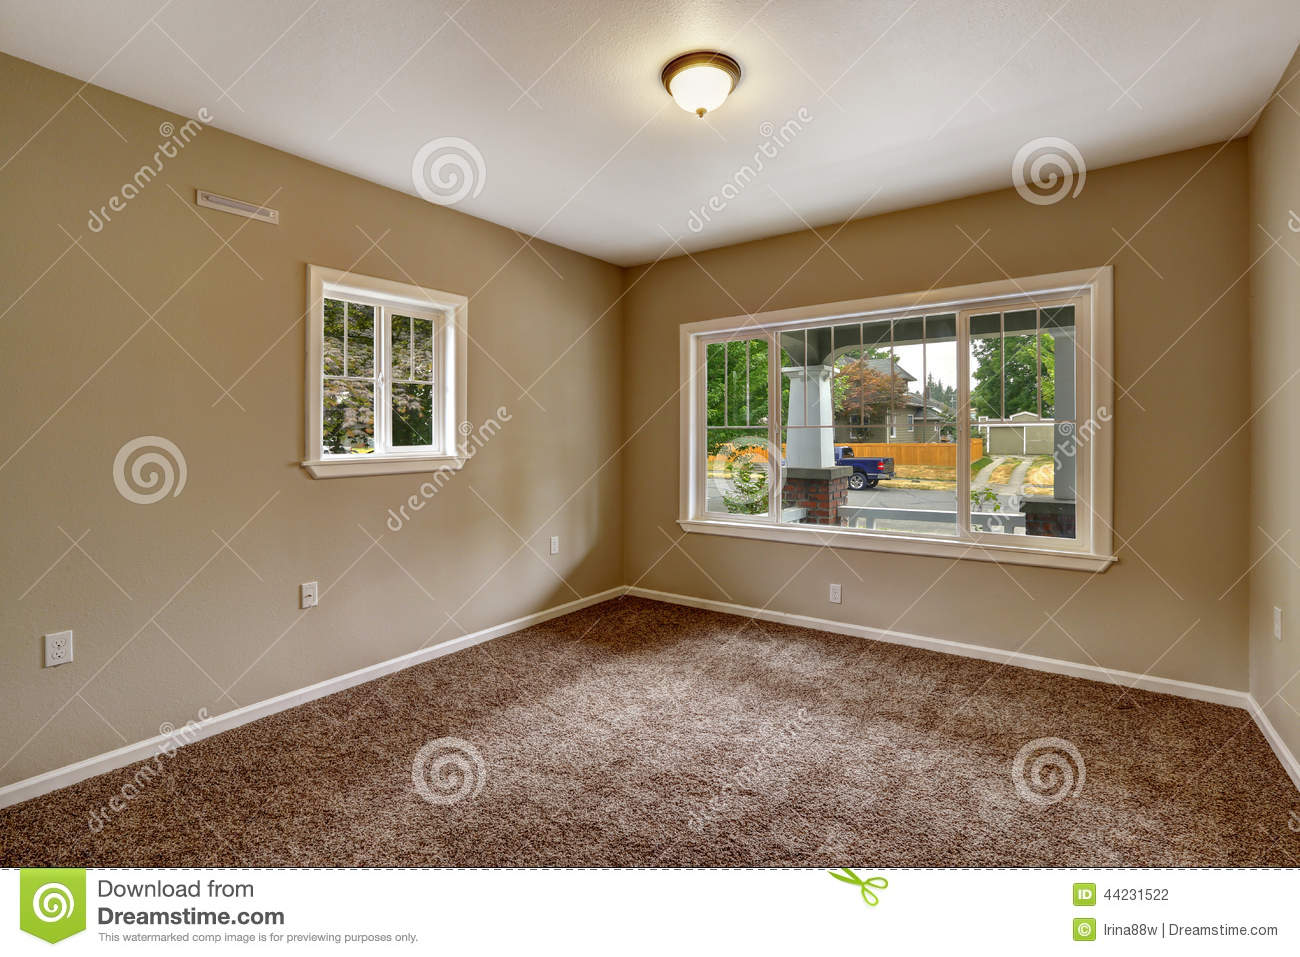 Beige Empty Room With Brown Carpet Floor Stock Photo